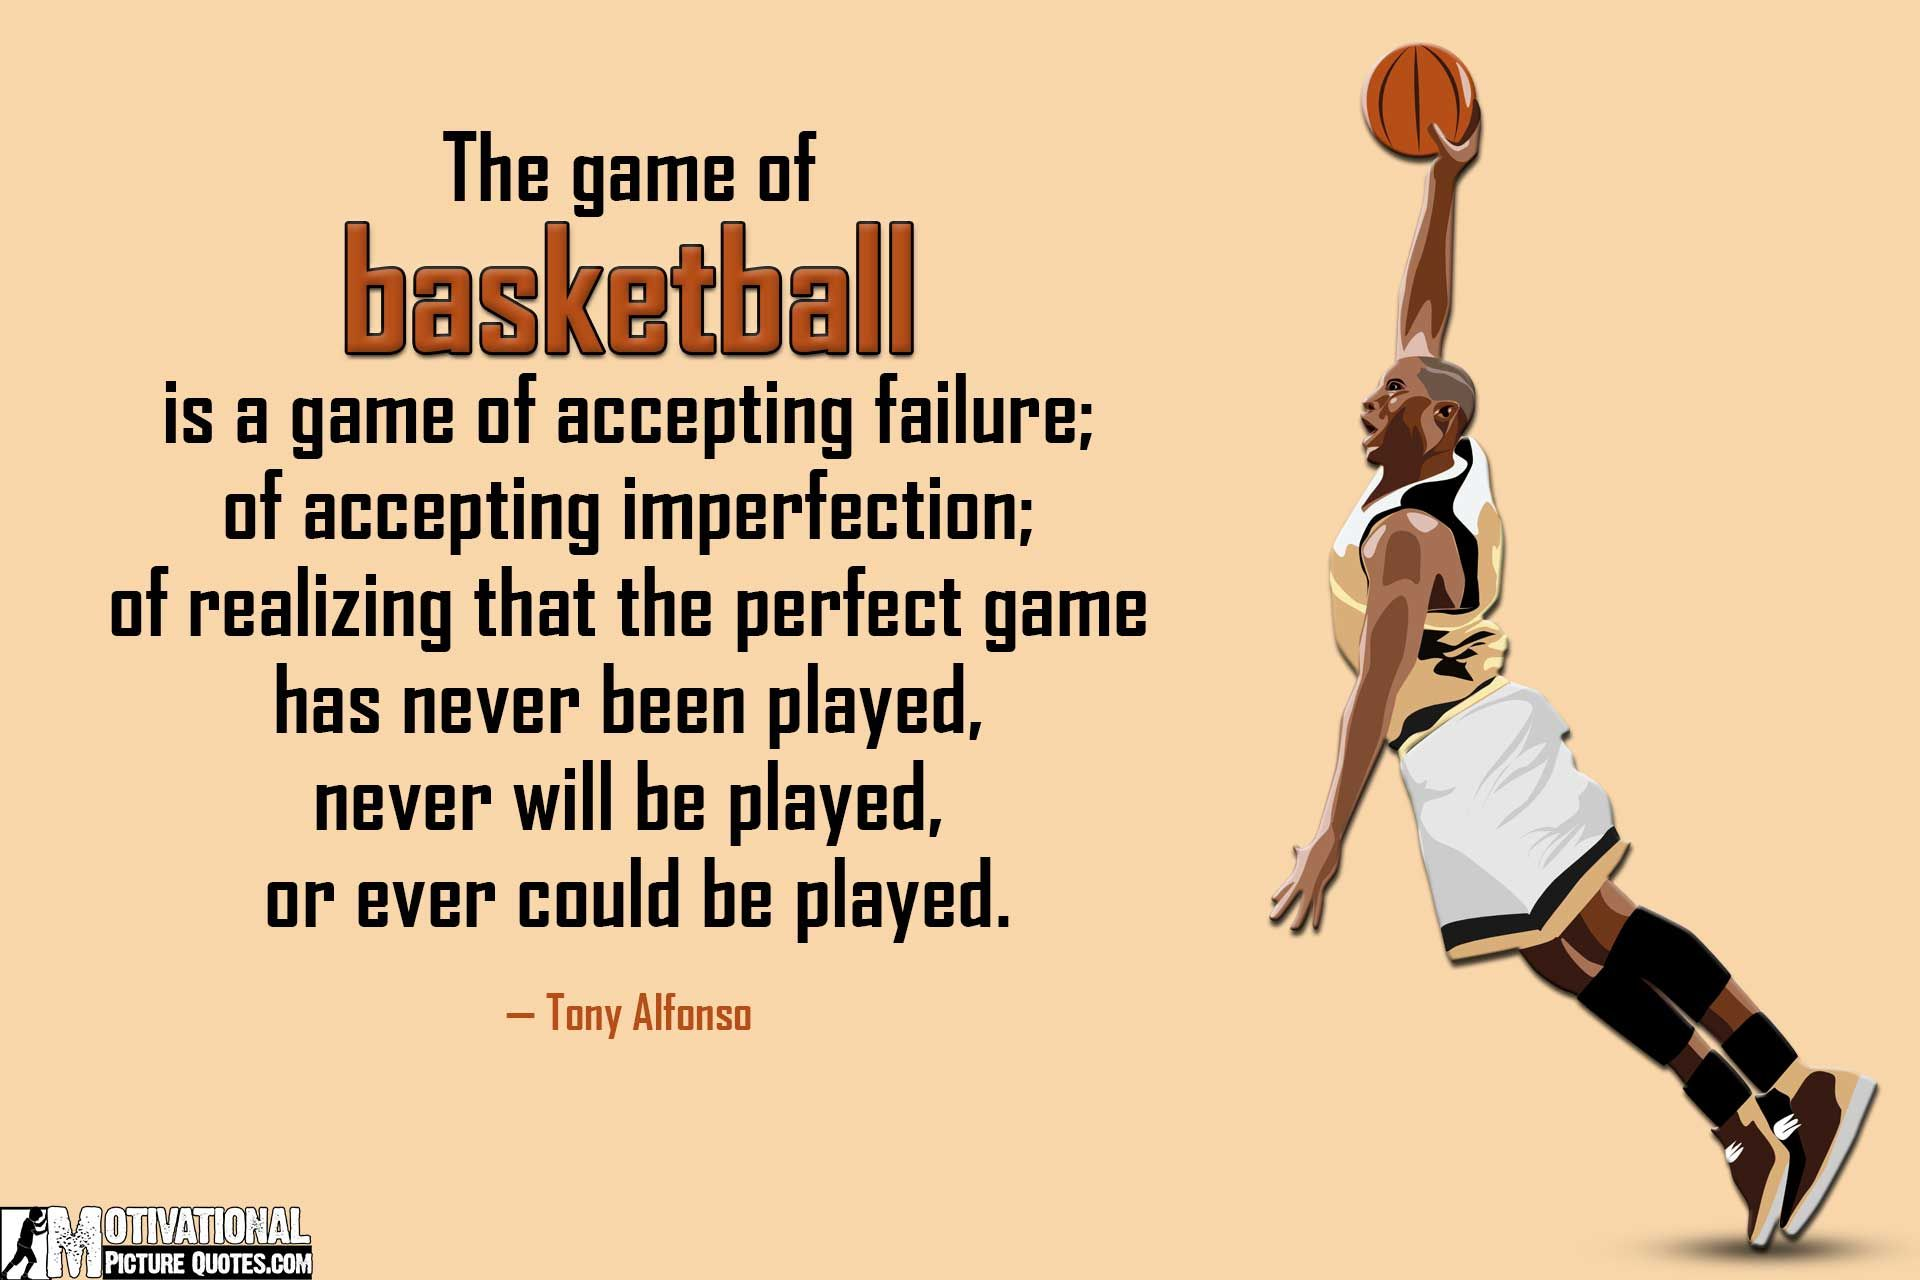 Inspirational Basketball Quotes Pictures by Tony Alfonso ...